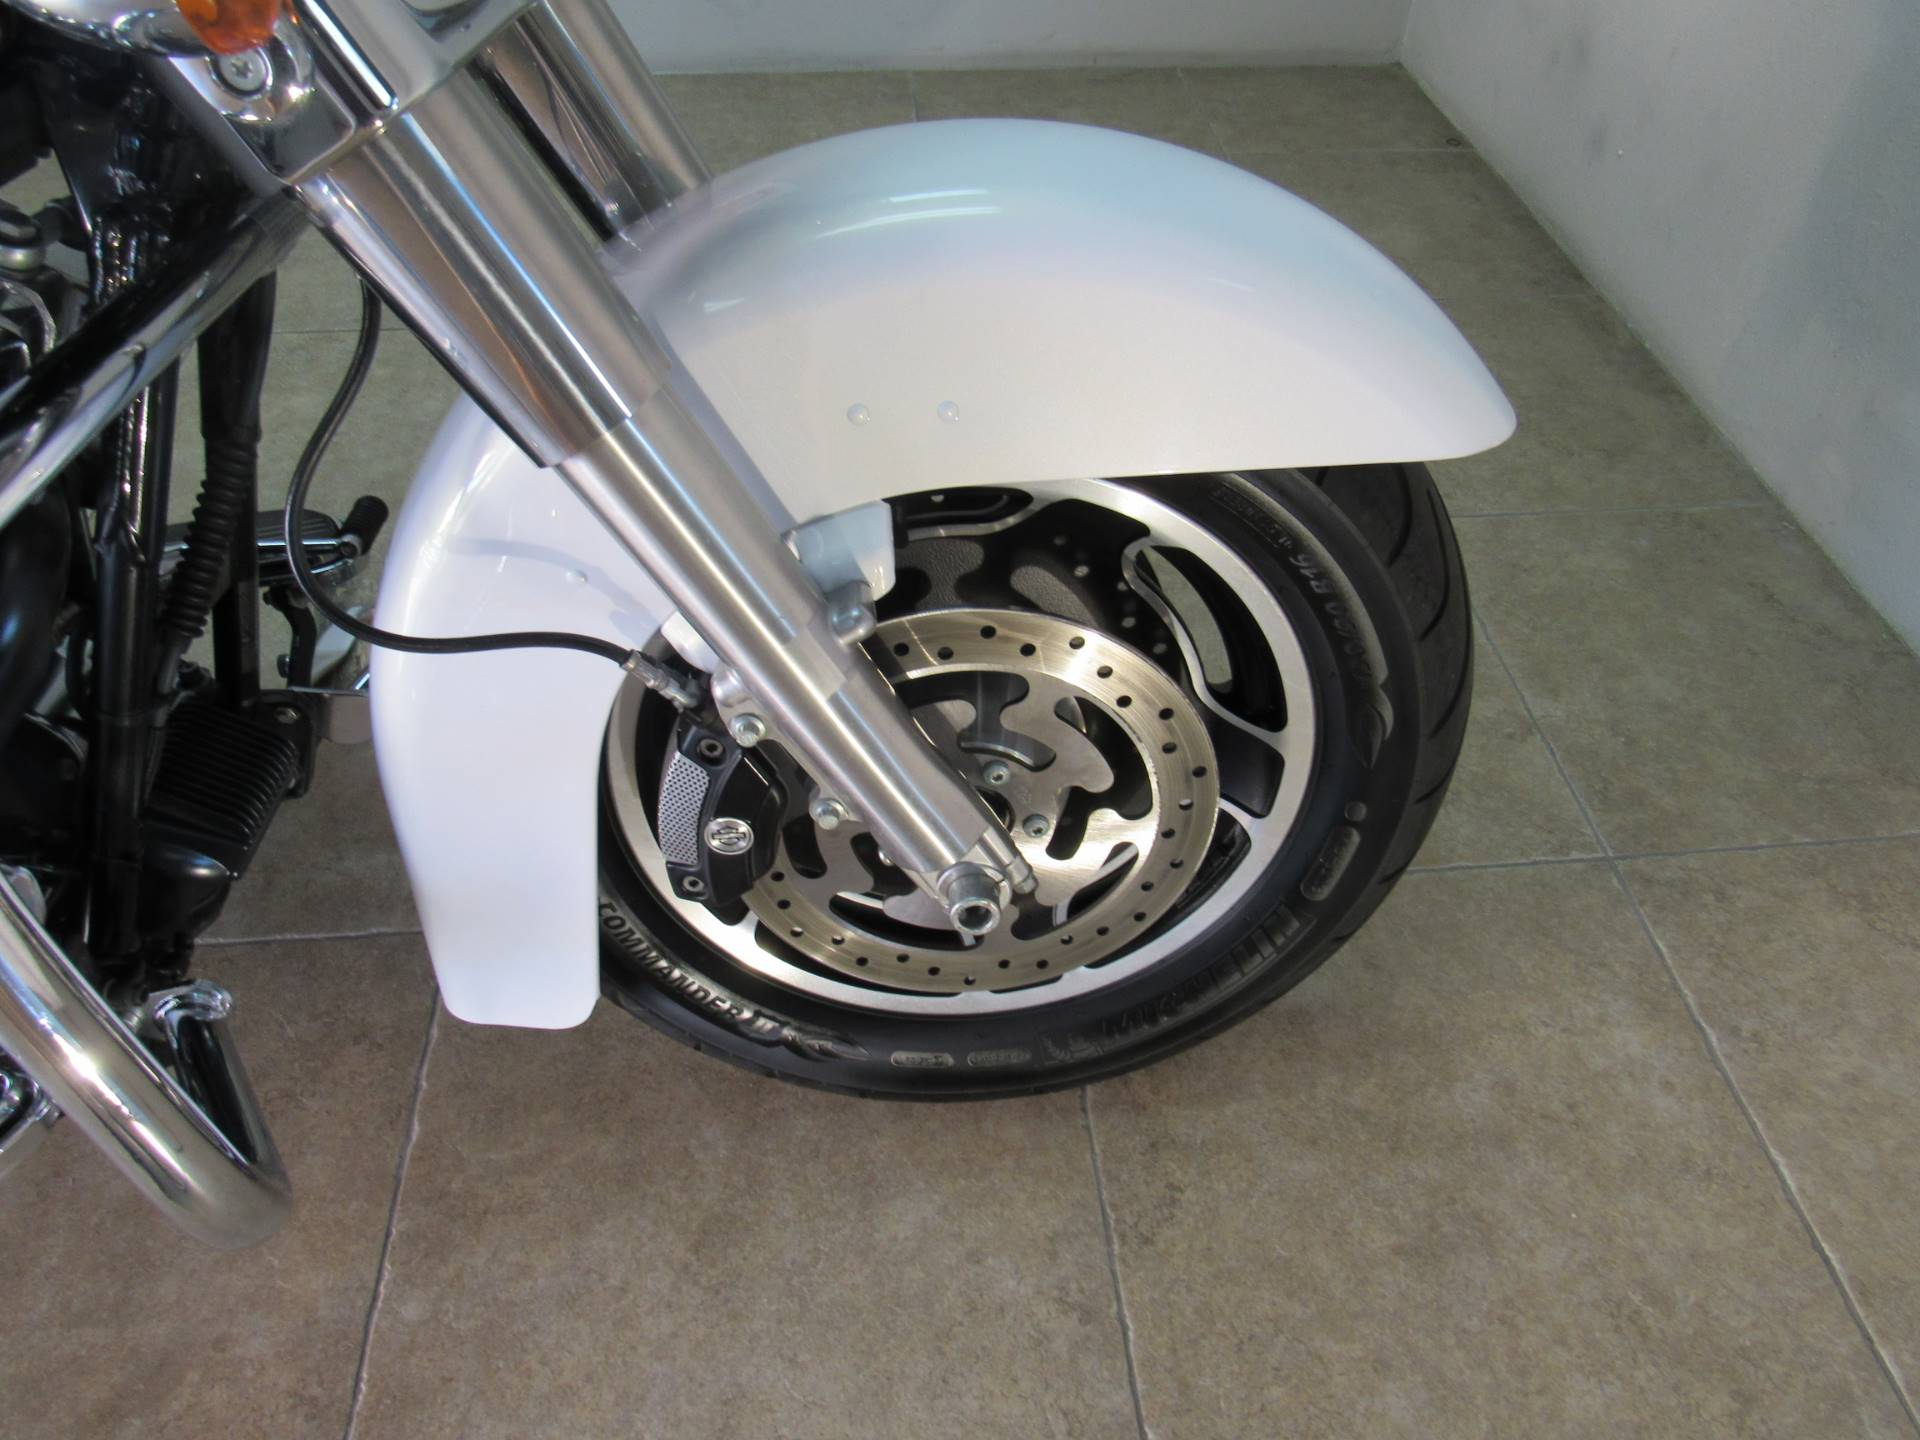 2008 Harley-Davidson Street Glide® in Temecula, California - Photo 15